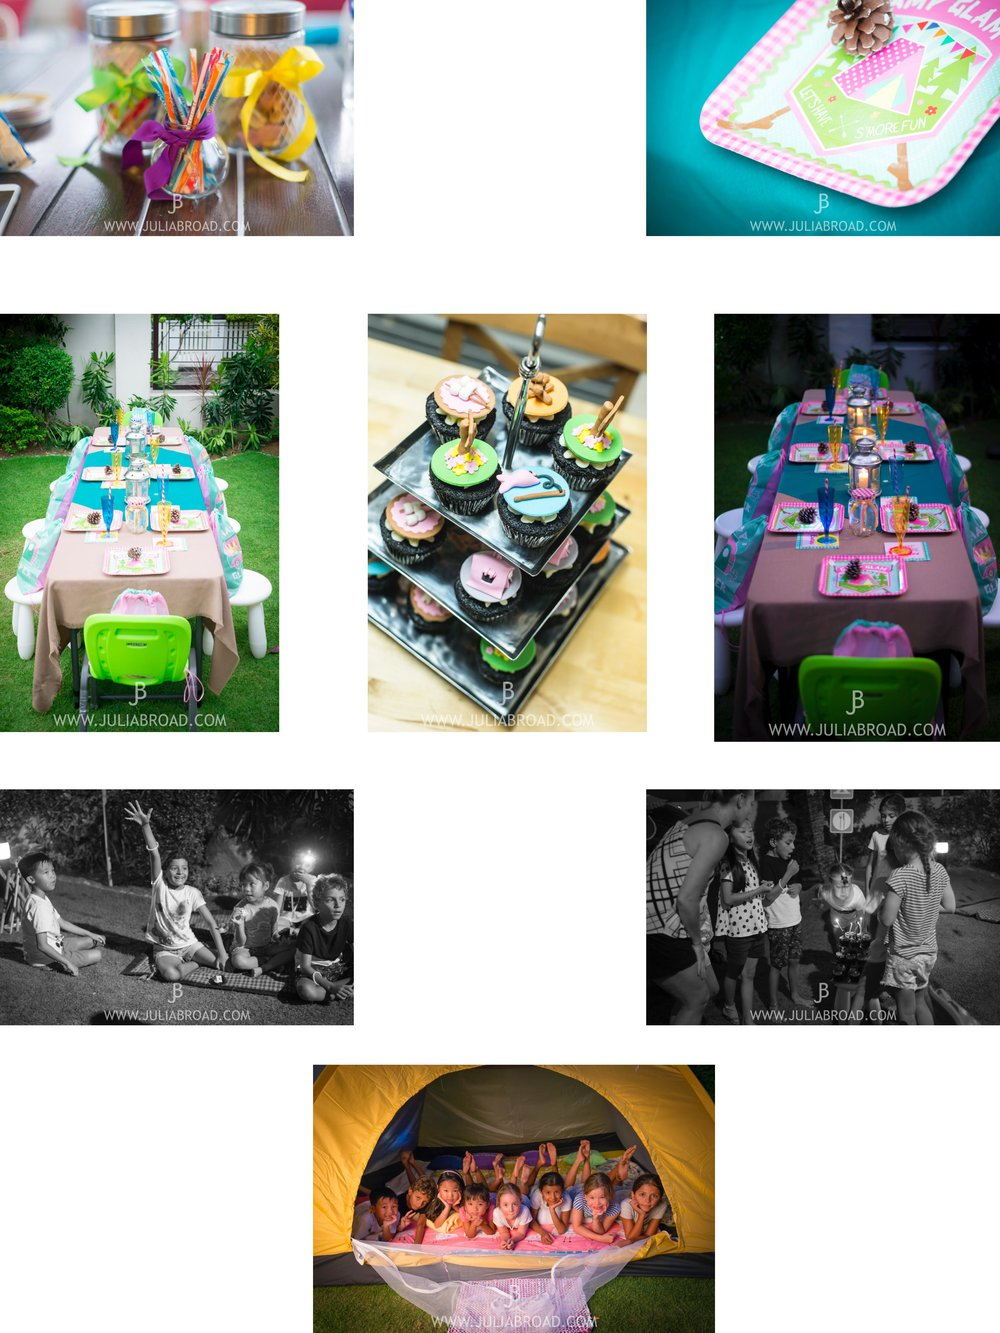 A very special birthday for a very special girl. Why go camping when you can go glamping? Complete with treasure hunt, BBQ and themed cupcakes.